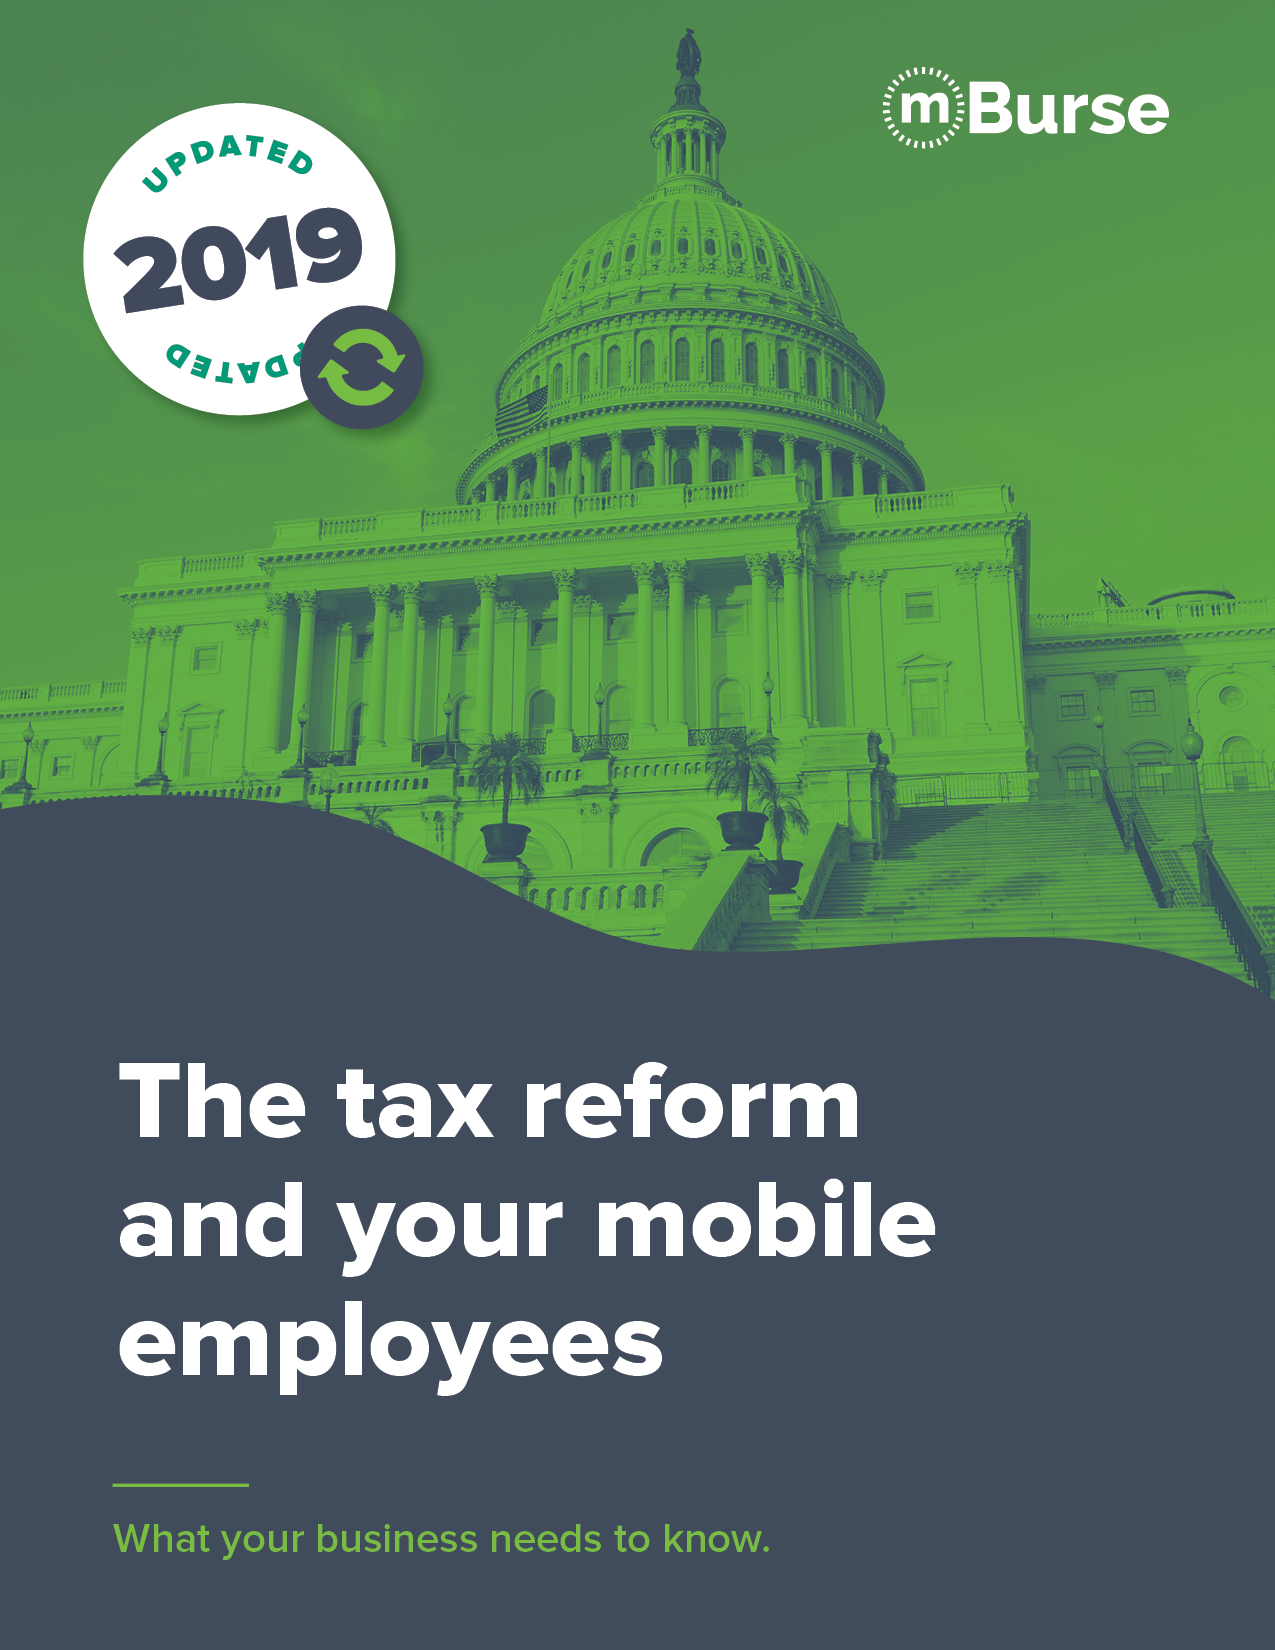 mBurse 2019 Updated Tax Reform eBook